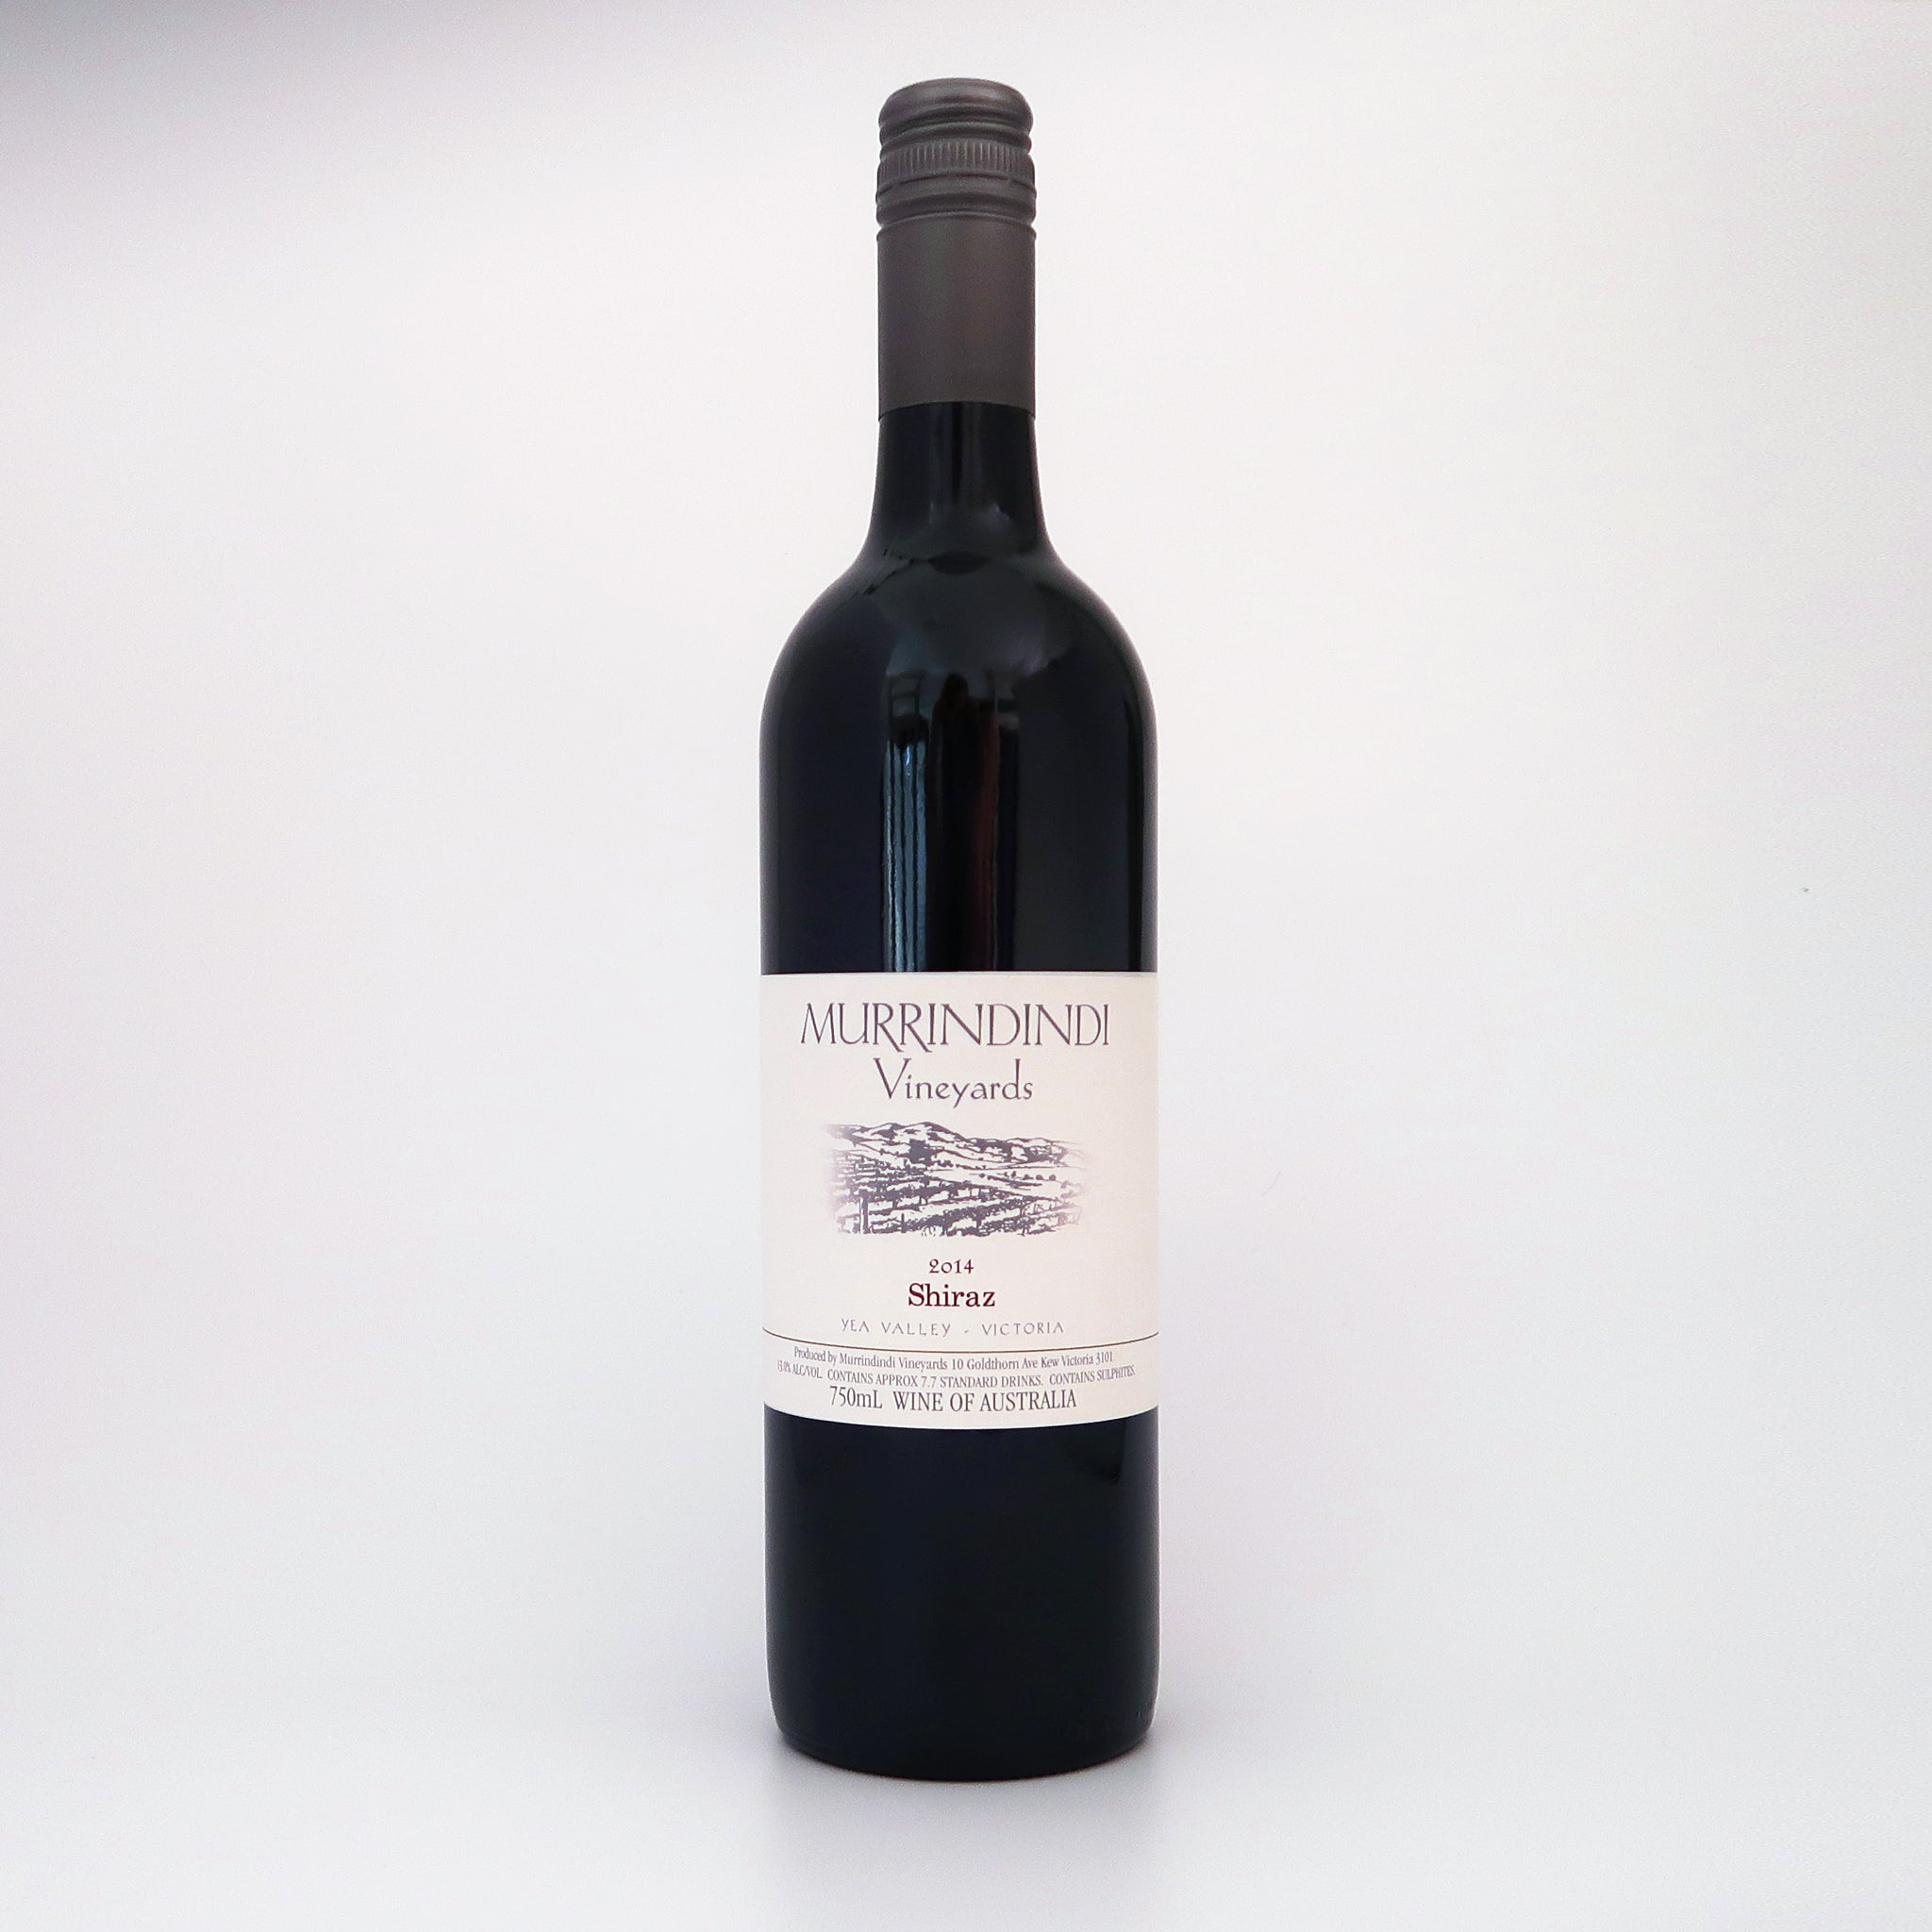 Family Reserve - Murrindindi Shiraz 2014 (6 bottles)